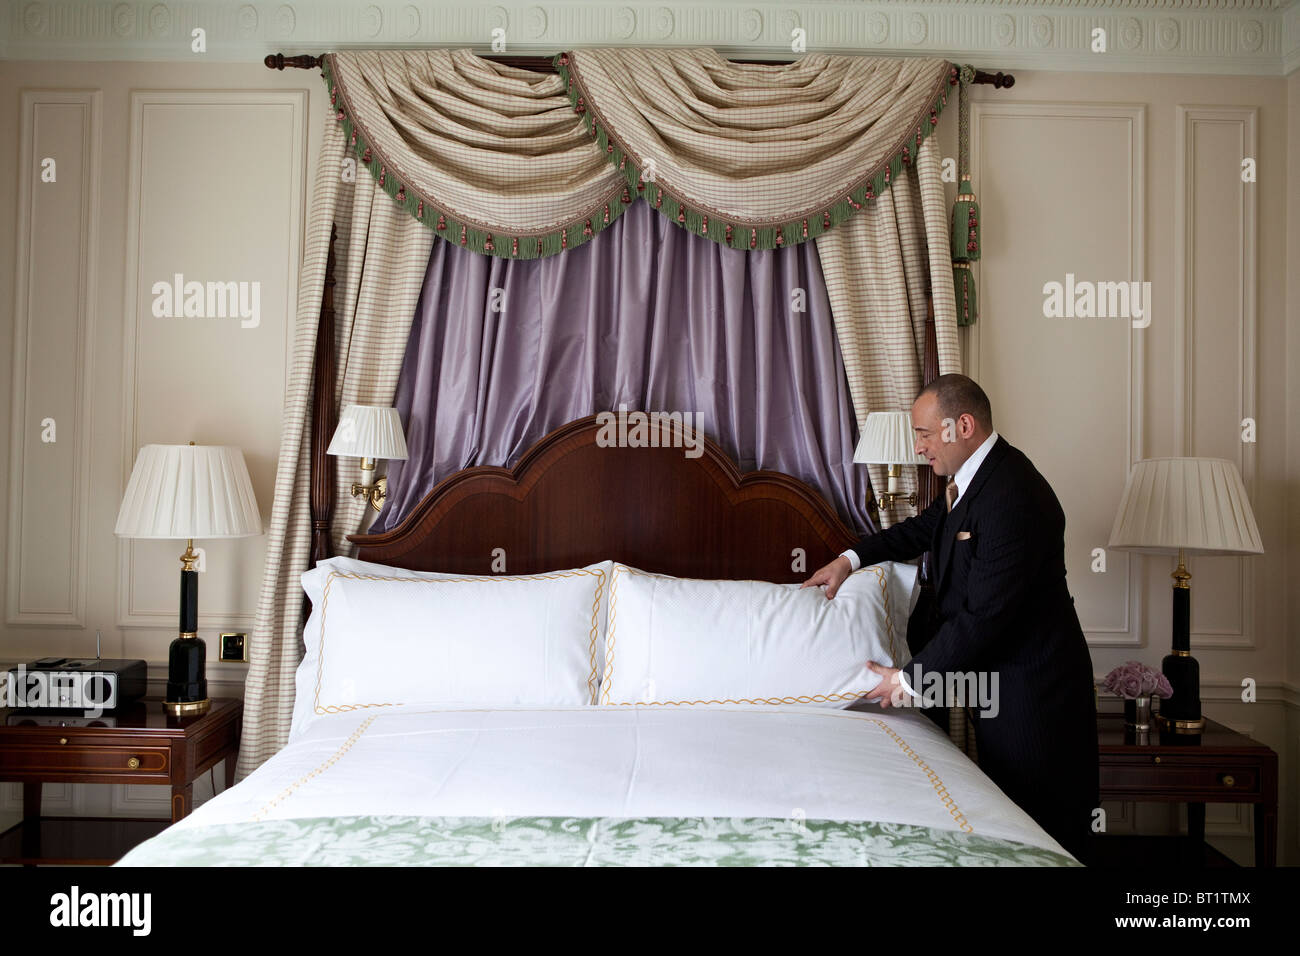 Savoy Hotel in London. Reopened in October 2010 after a complete refurbishment. Photos show a Butler in a River - Stock Image